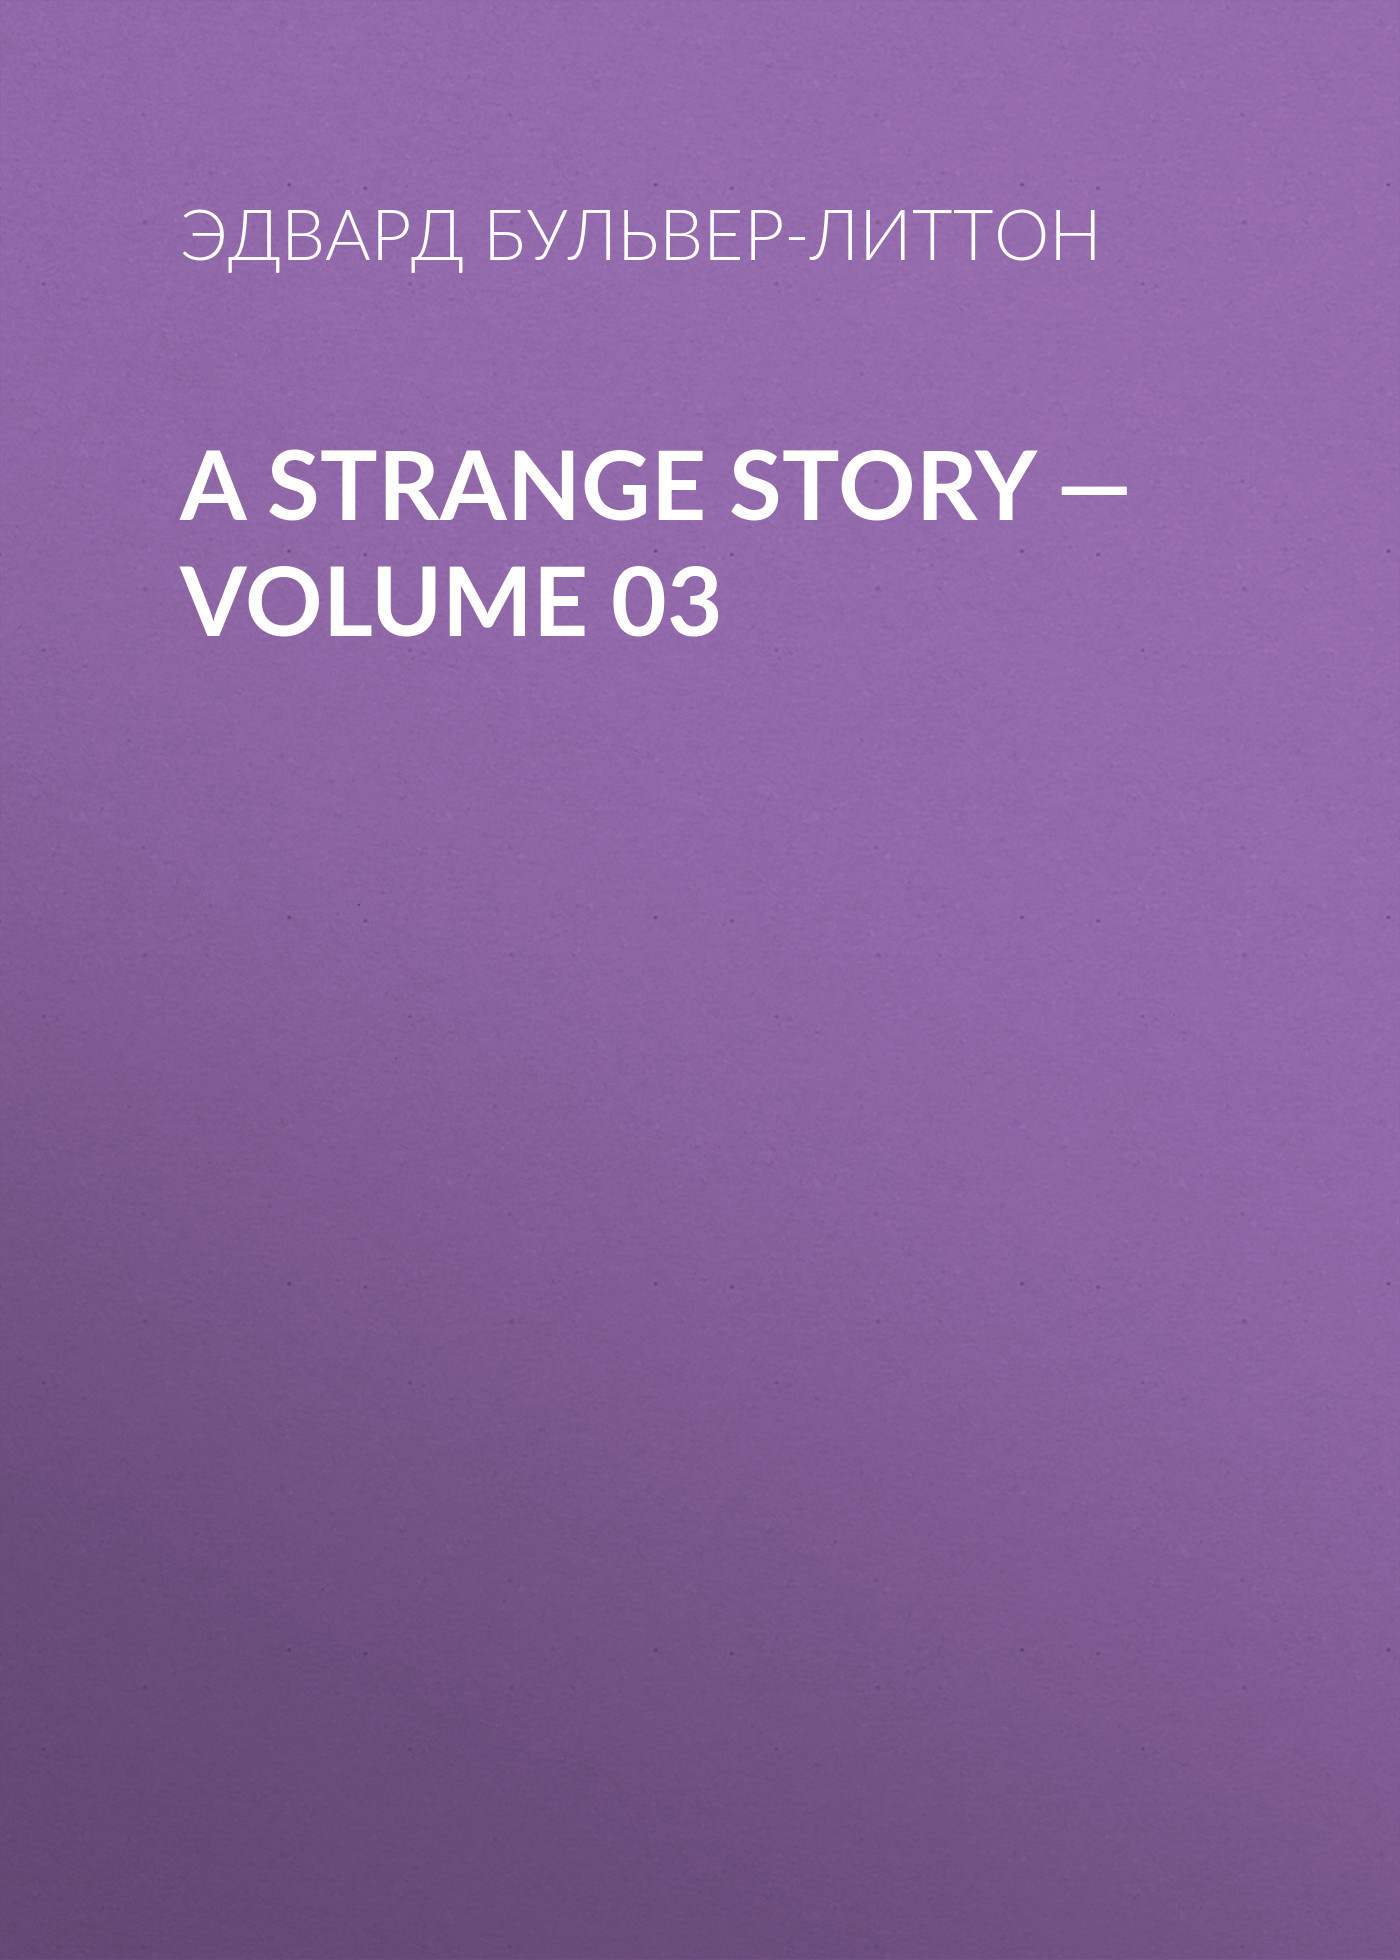 Эдвард Бульвер-Литтон A Strange Story — Volume 03 watson william davy trevethlan a cornish story volume 3